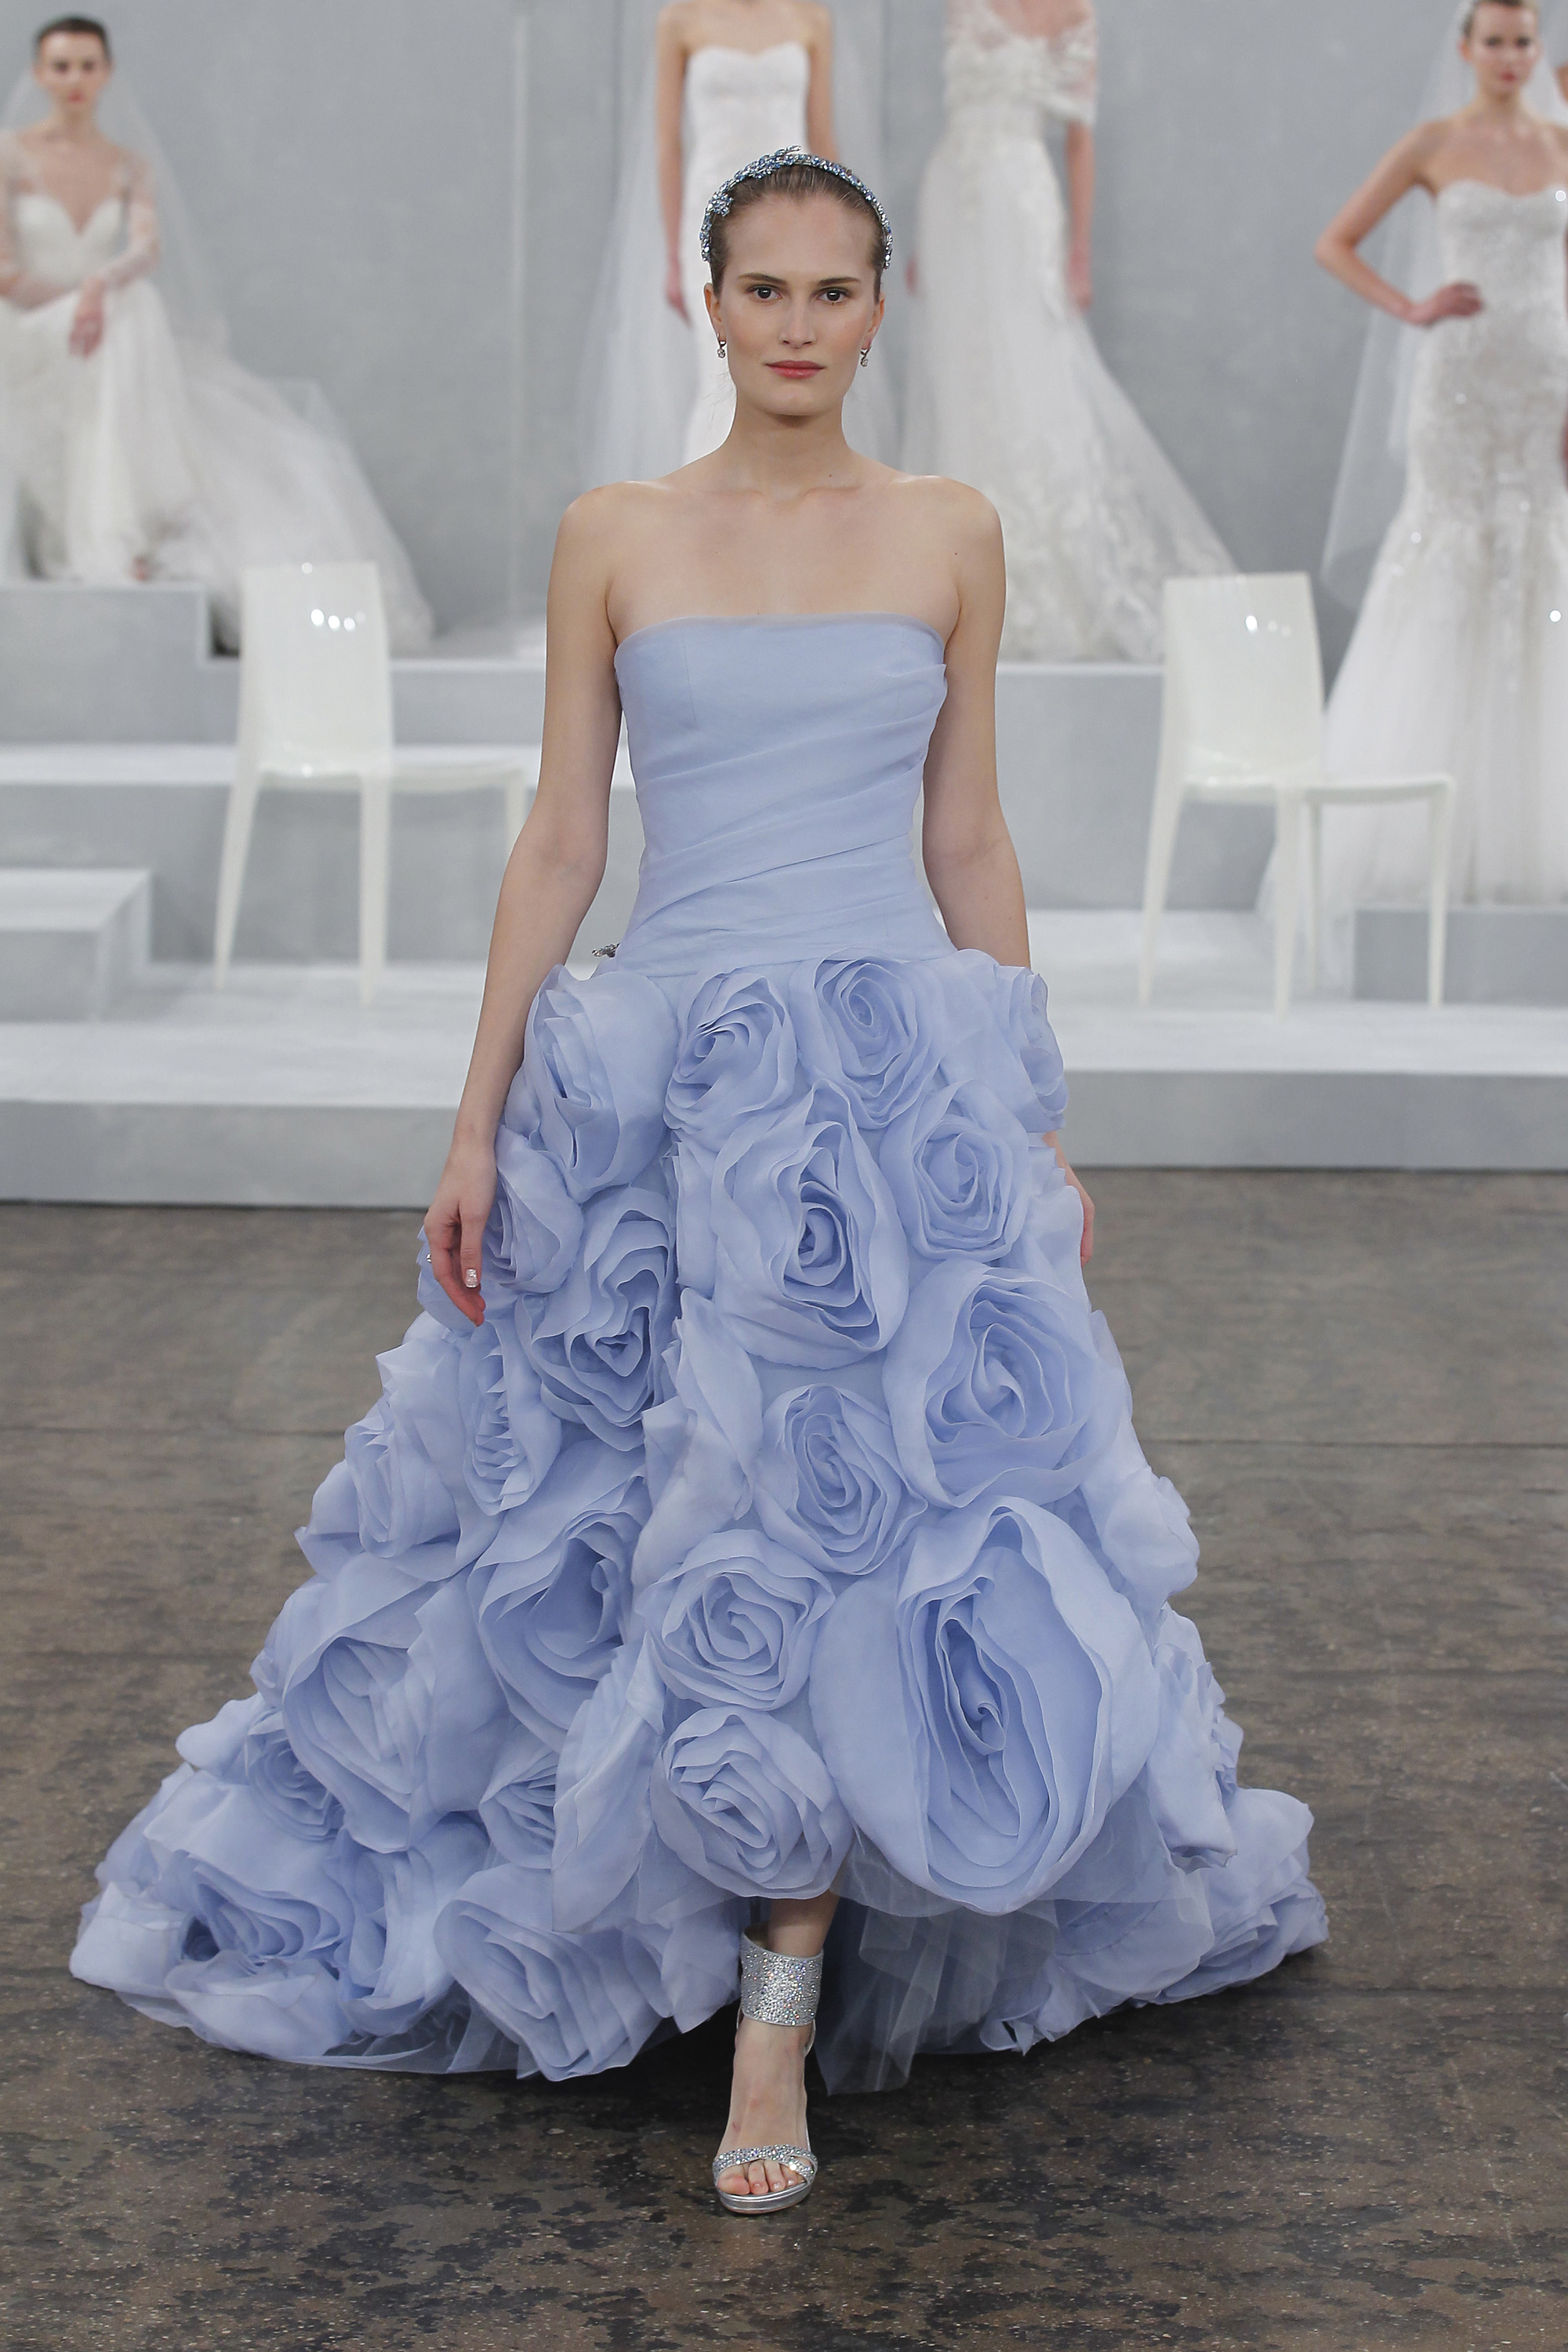 25 Of 2015\'s Best Wedding Dresses to Fulfill The Fantasies of Every ...